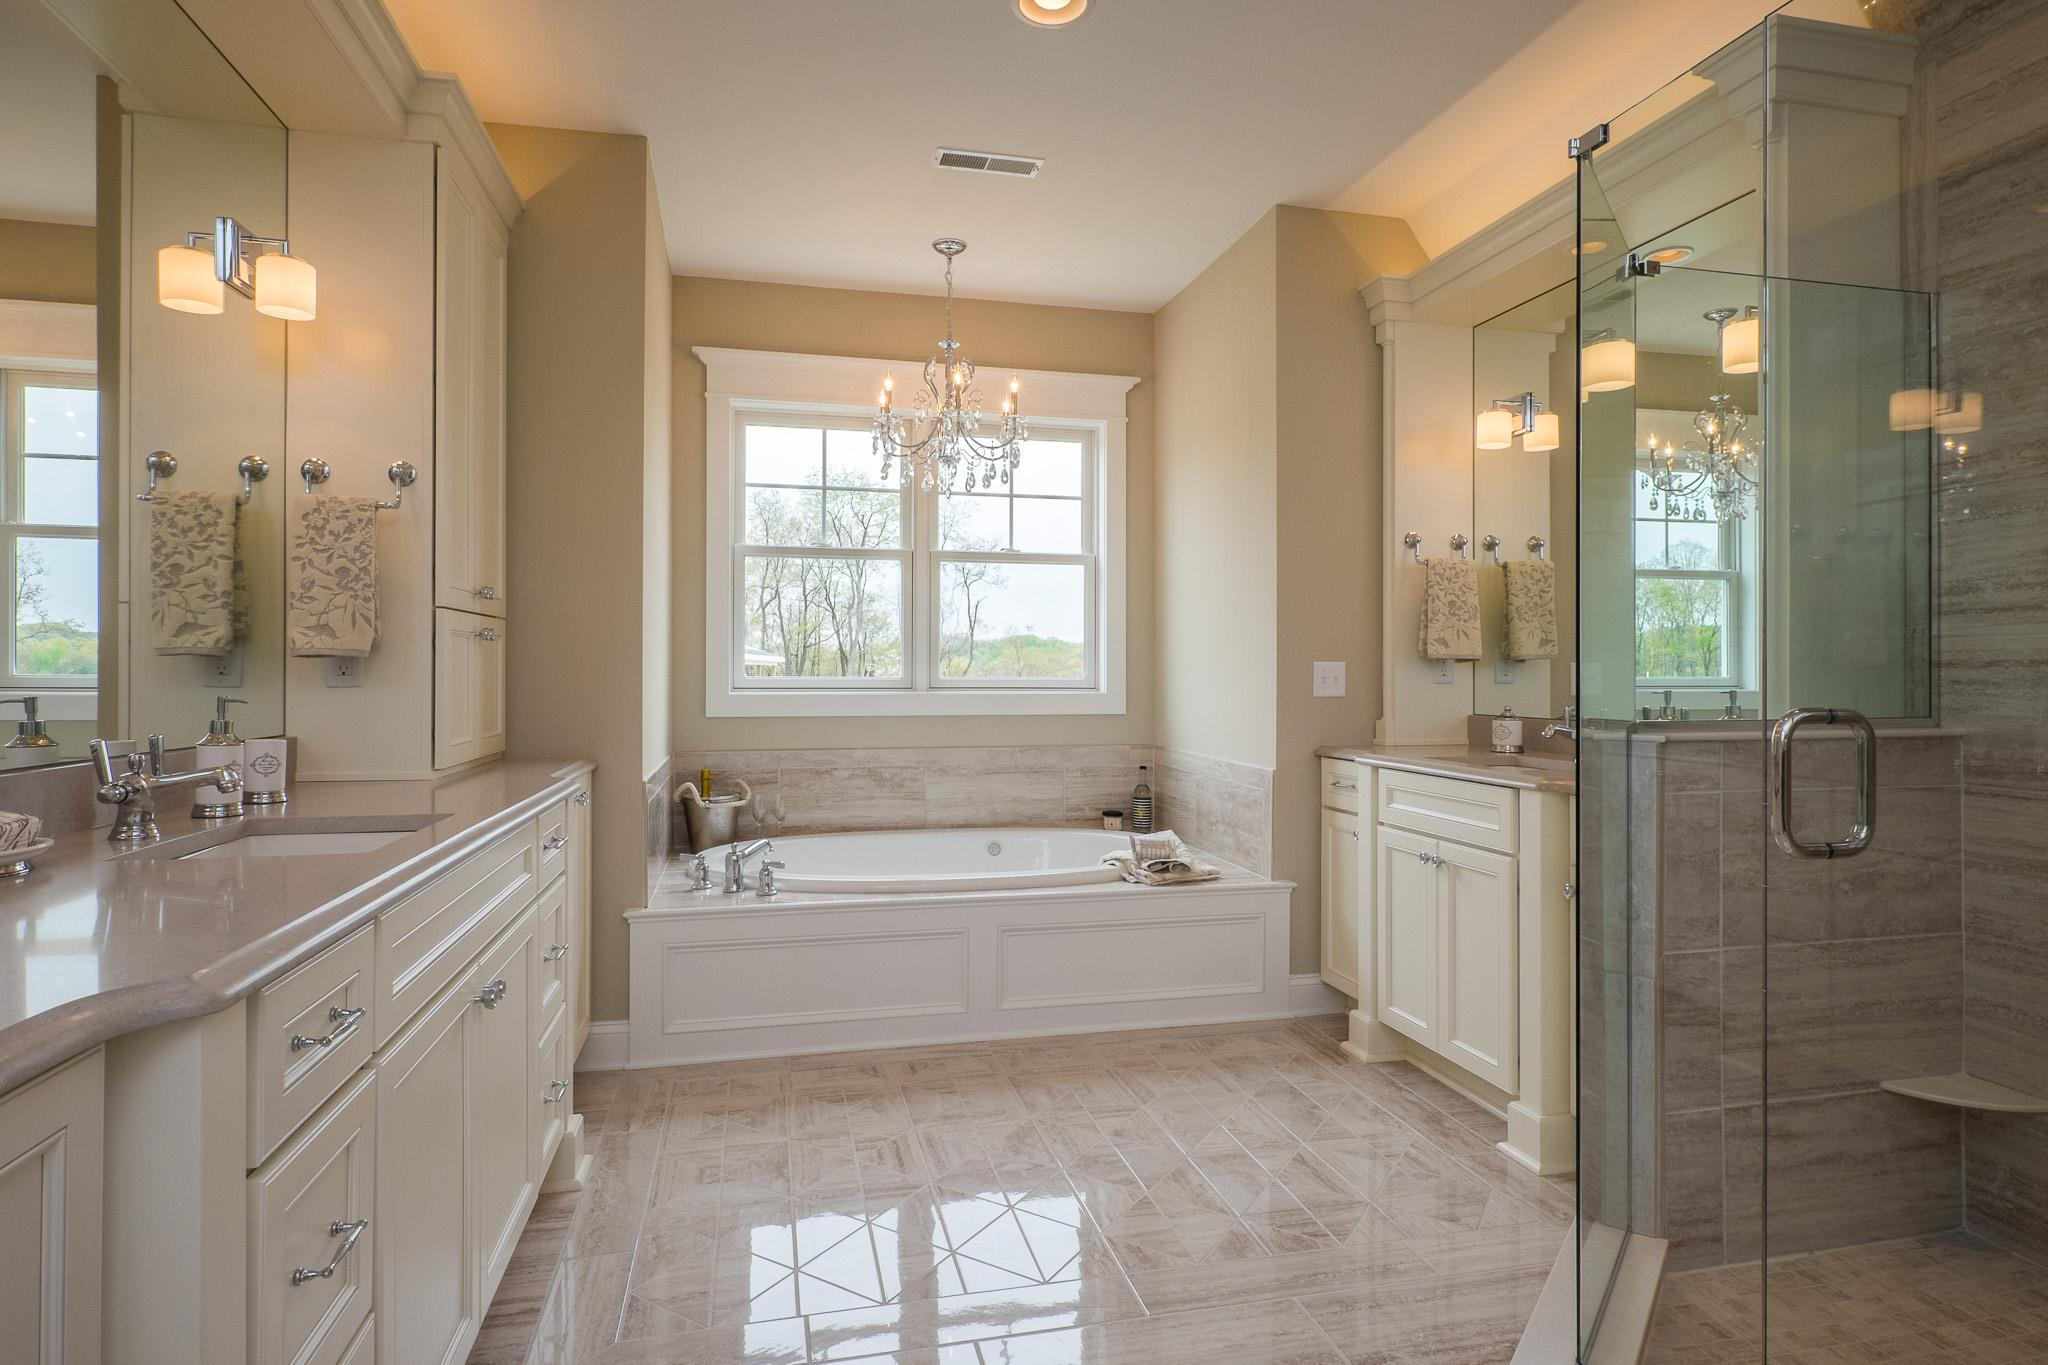 Bathroom featured in the Cambridge By Infinity Custom Homes in Pittsburgh, PA